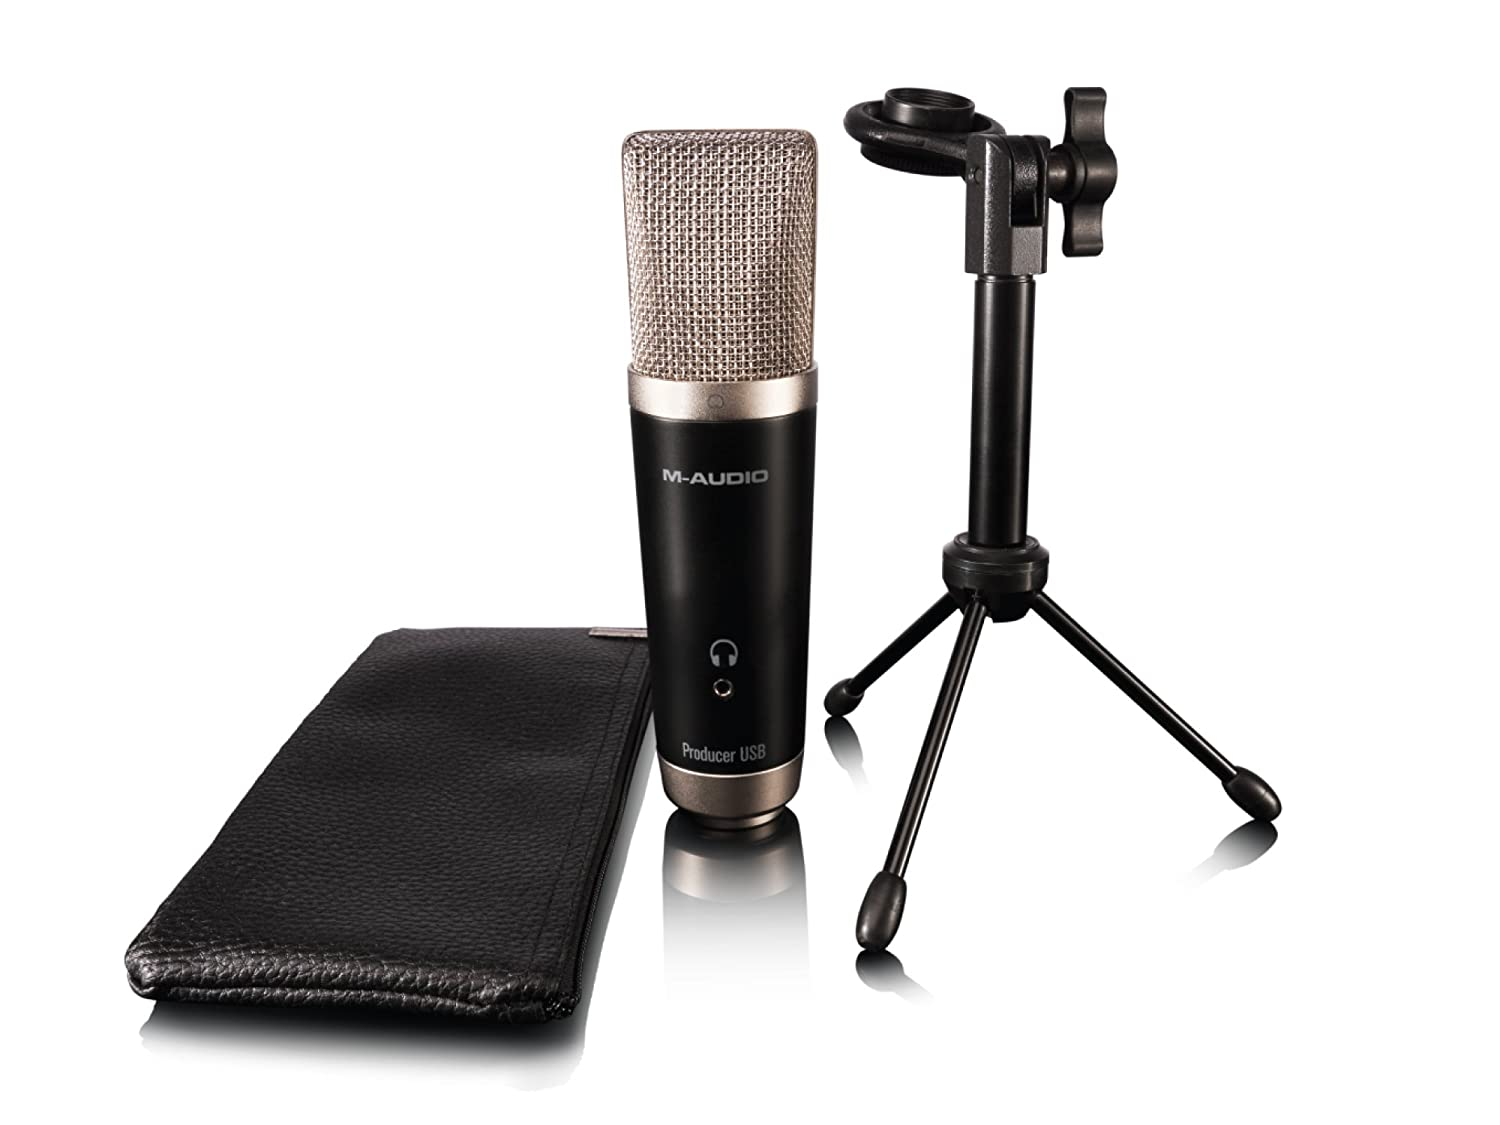 M-AUDIO PRODUCER USB MICROPHONE WINDOWS 7 X64 DRIVER DOWNLOAD